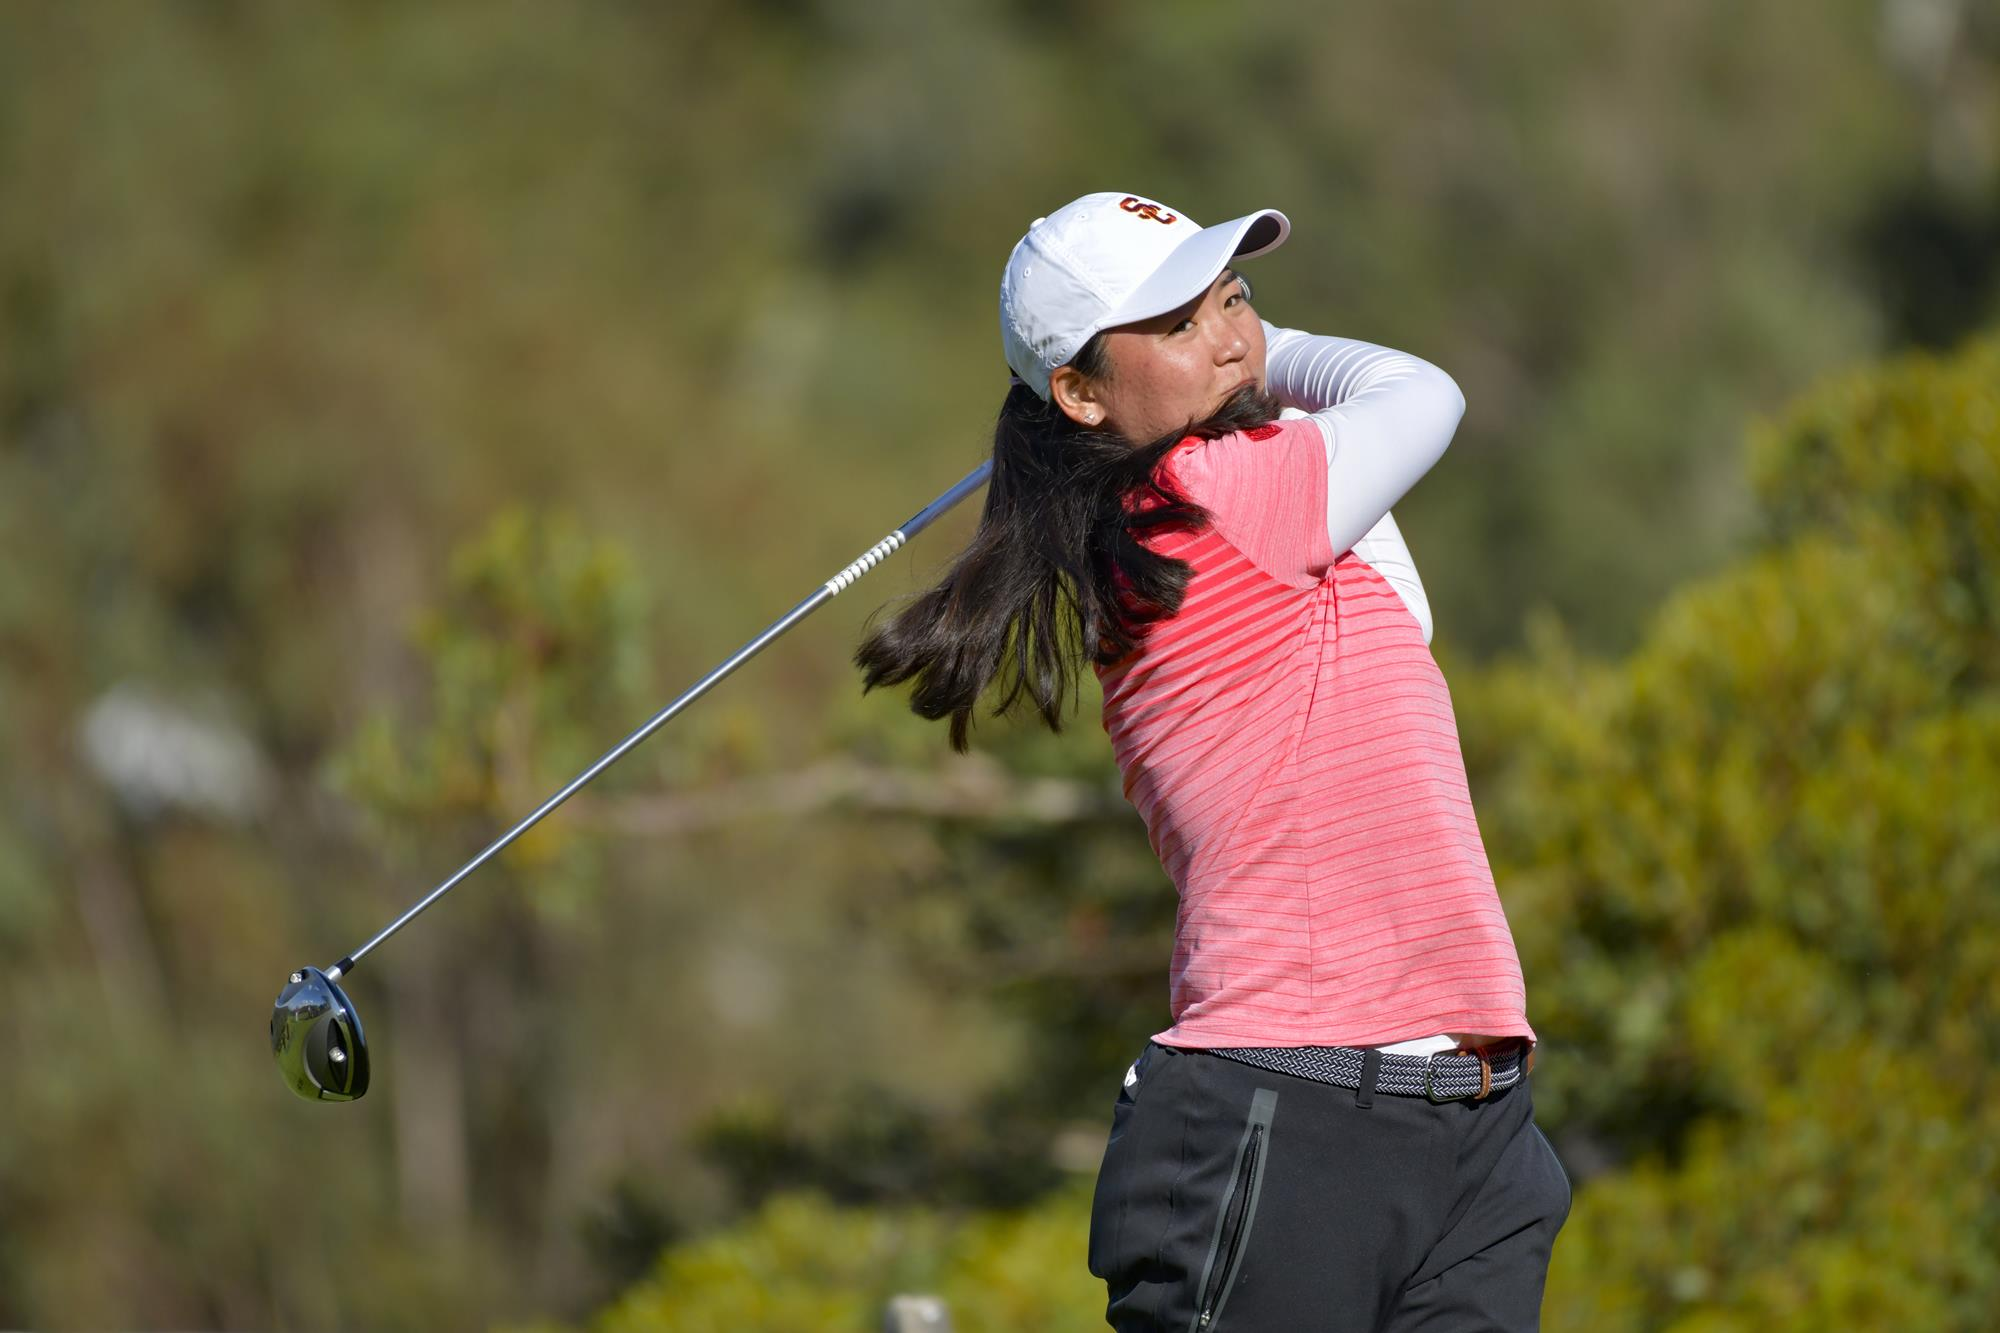 Usc_womens_golf_2018_north_grumman_mcgillen_4262